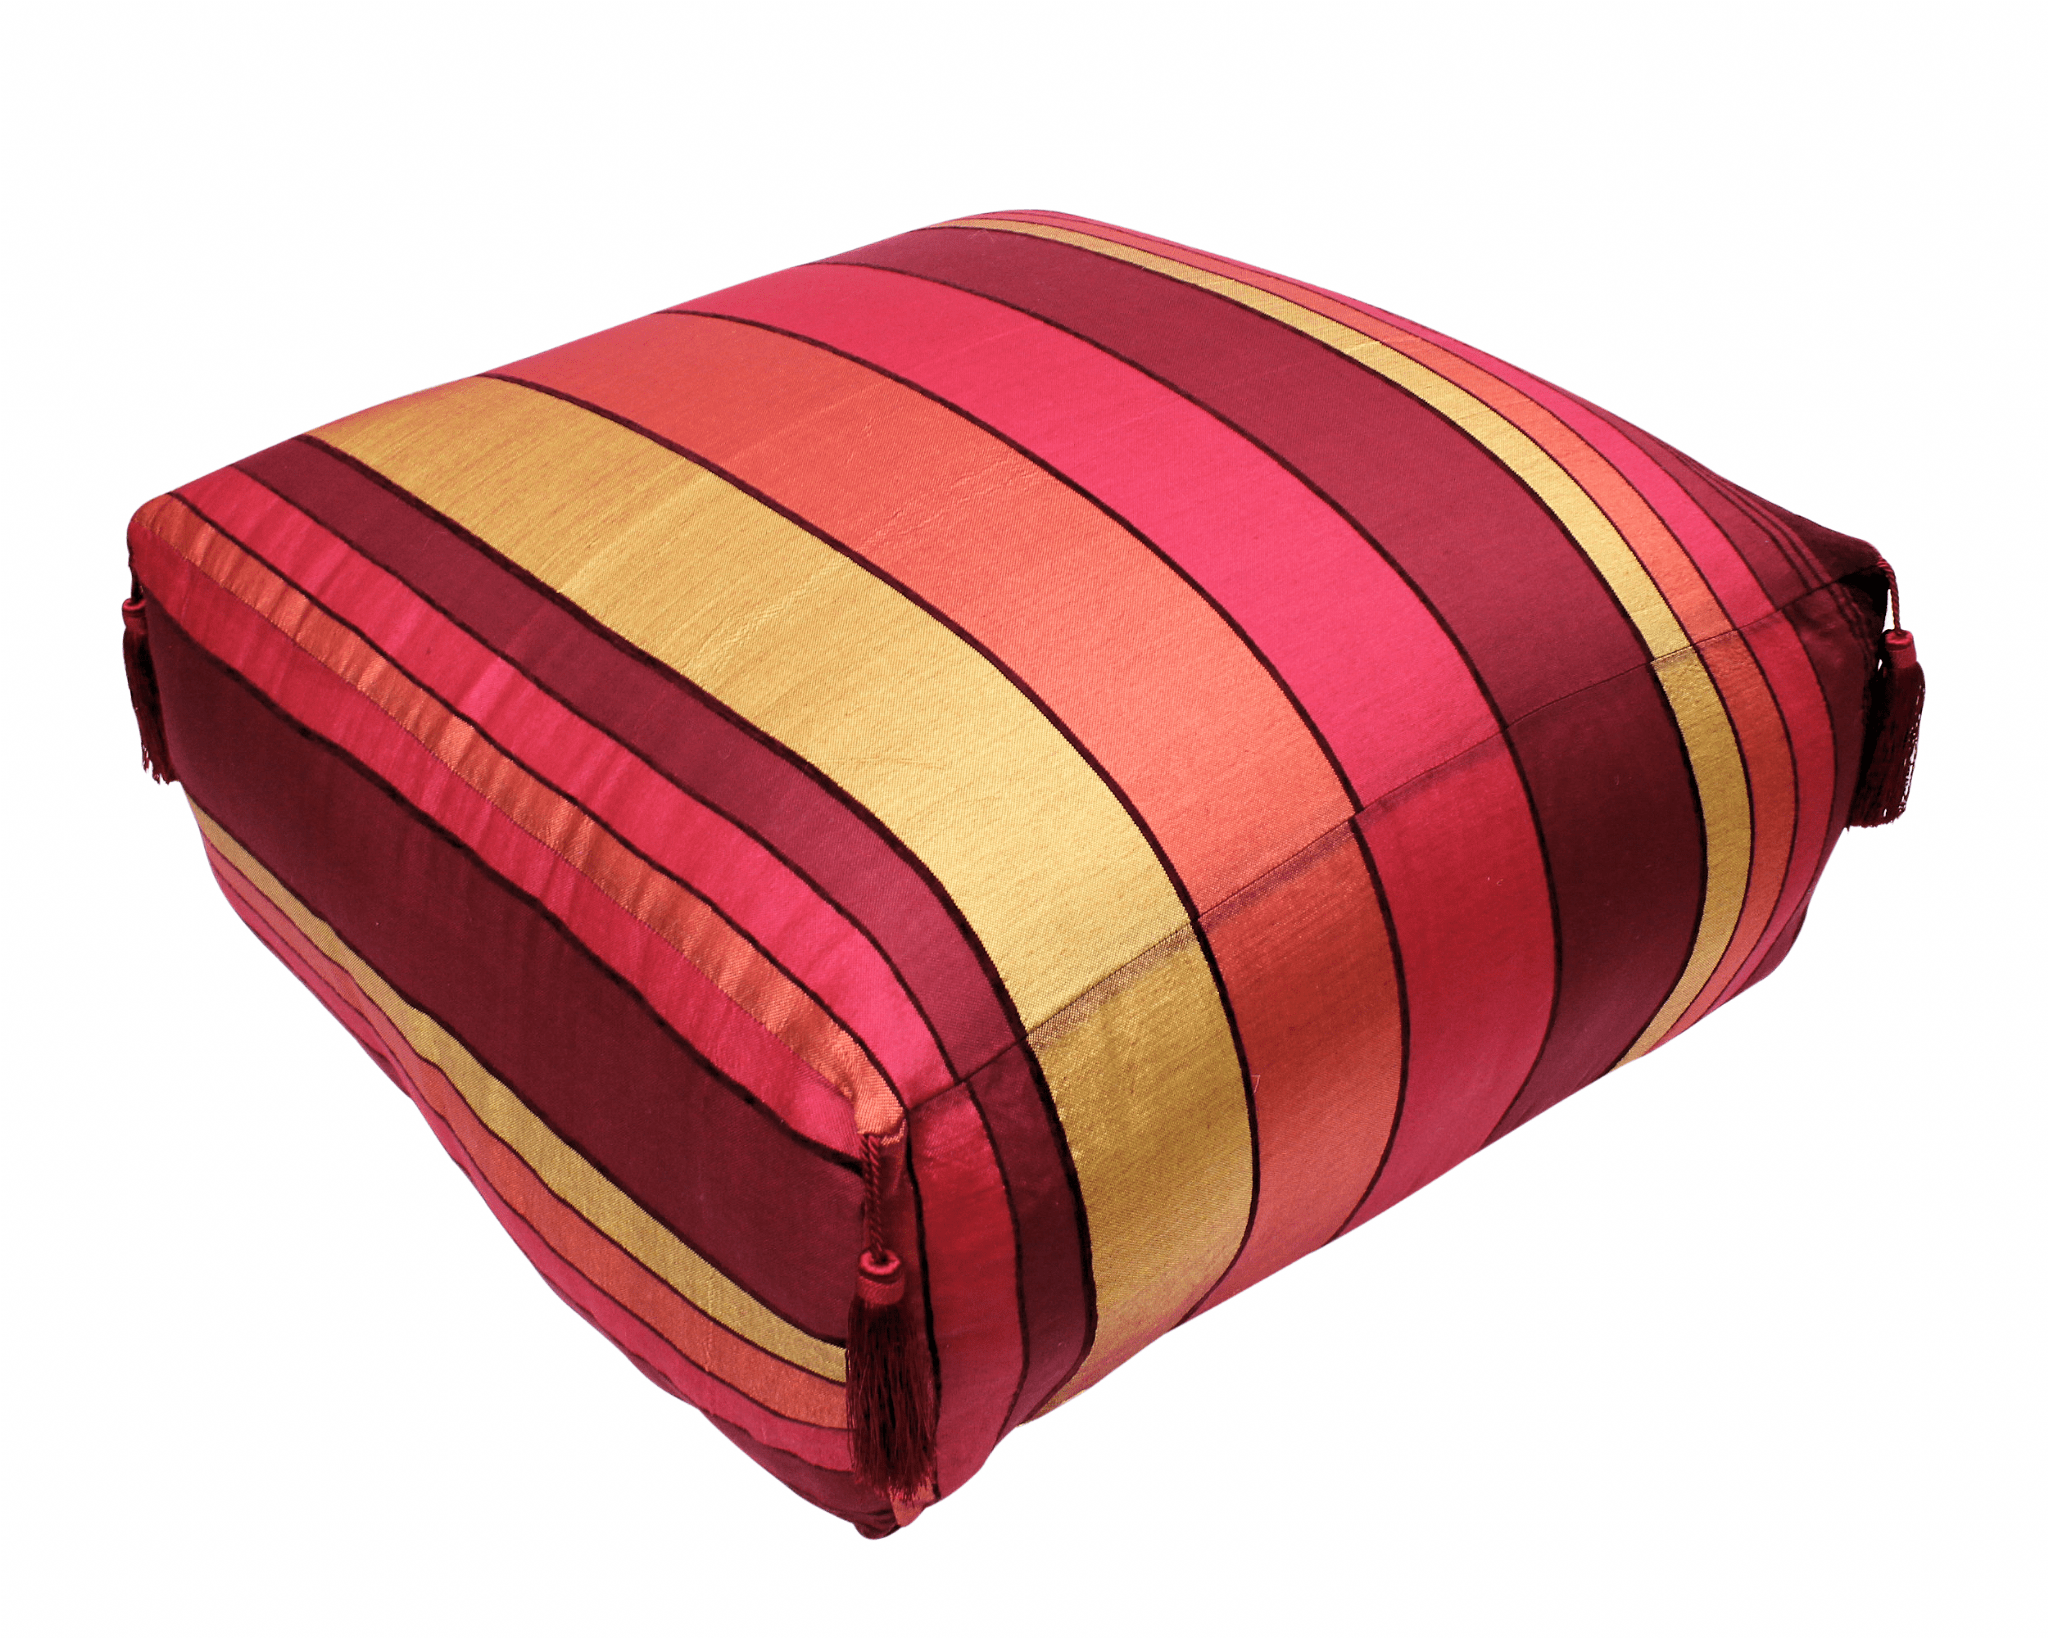 Pouf Xl Moroccan Pouf Pouffe Footrest Floor Cushion Cover Red Sabra Silk With Tassels Xl 65 X 65 X 30 Cm